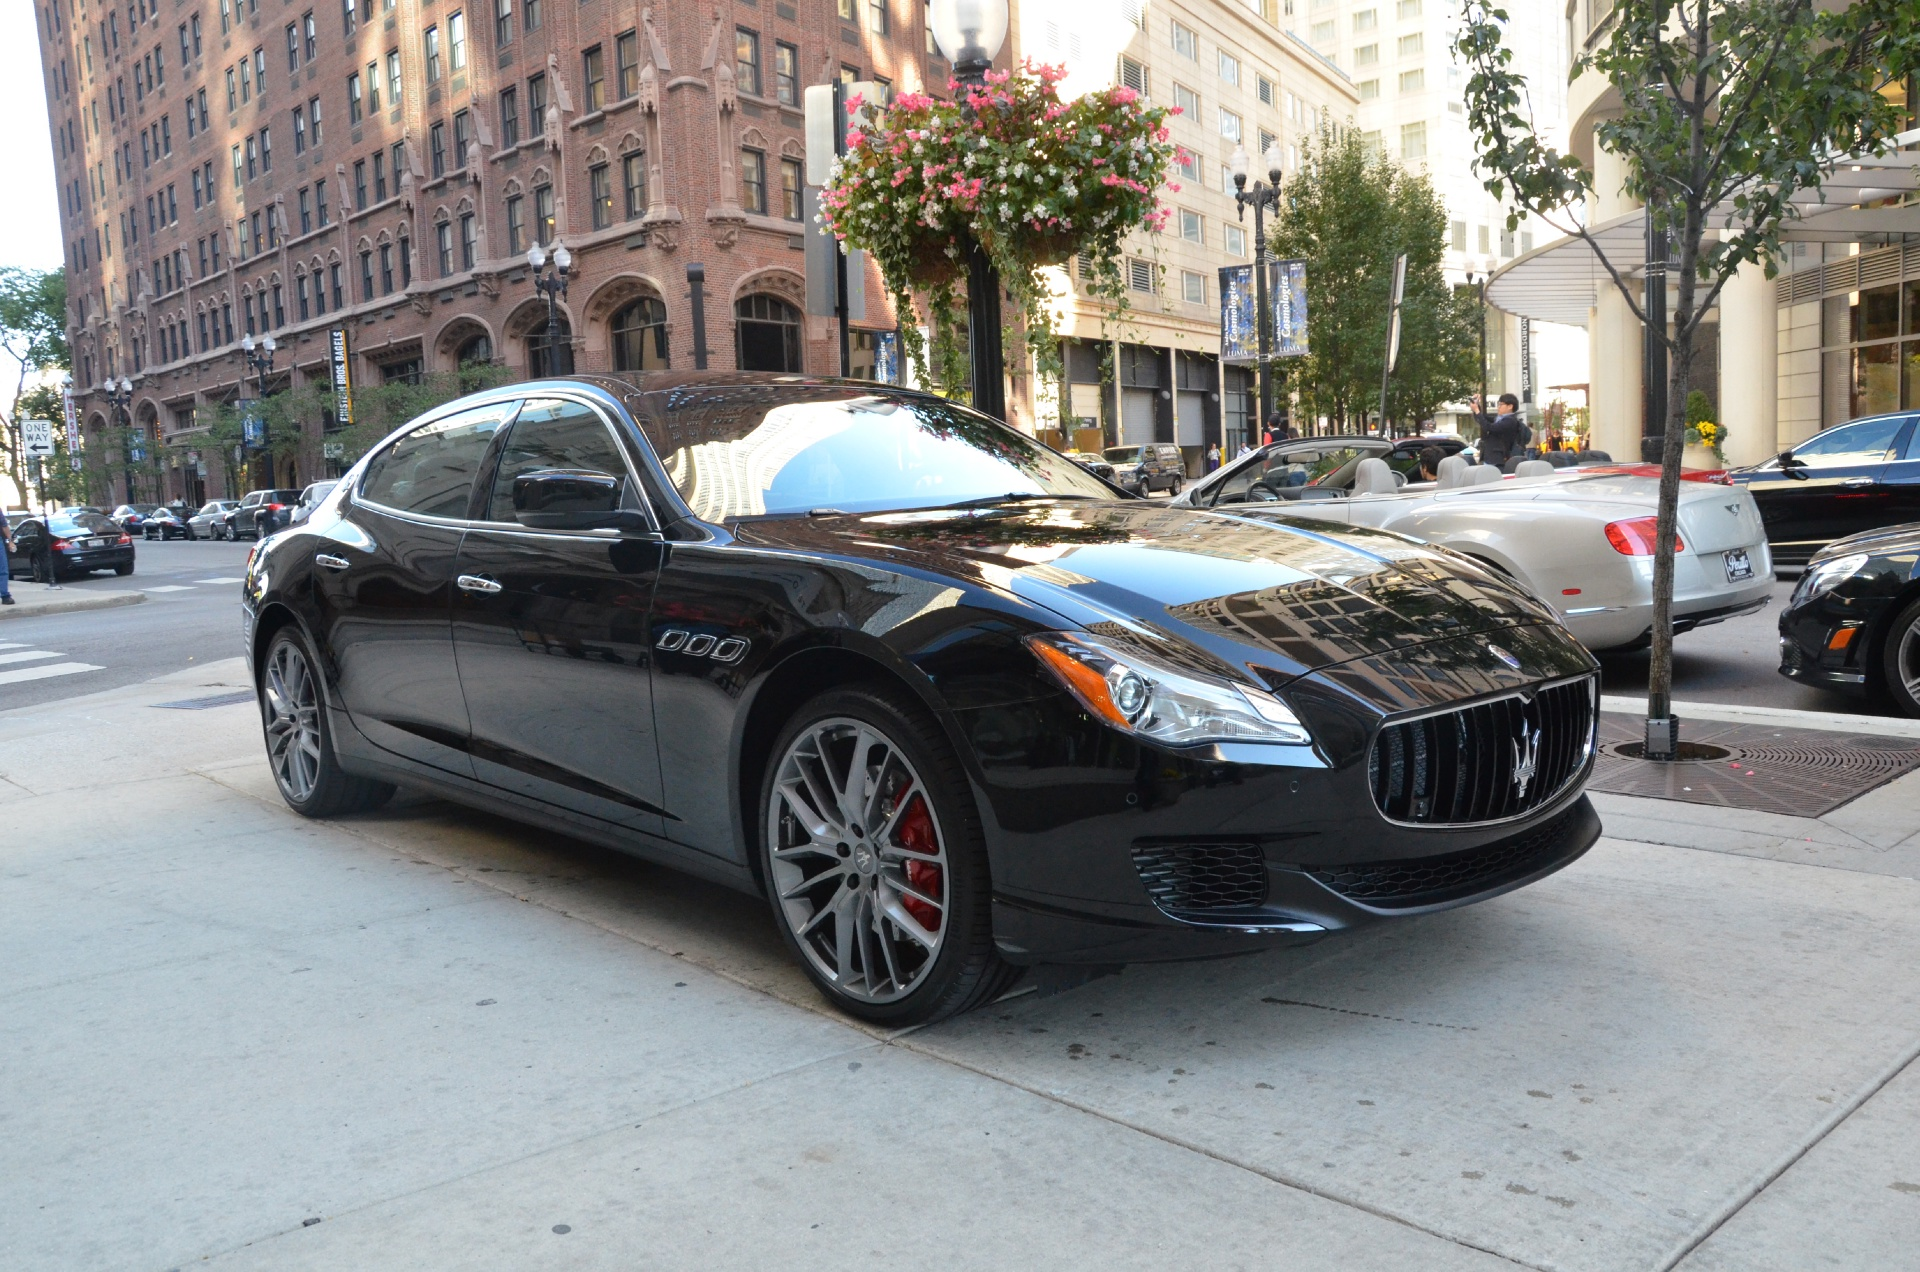 2014 maserati quattroporte s q4 s q4 stock m162 s for sale near chicago il il maserati dealer. Black Bedroom Furniture Sets. Home Design Ideas